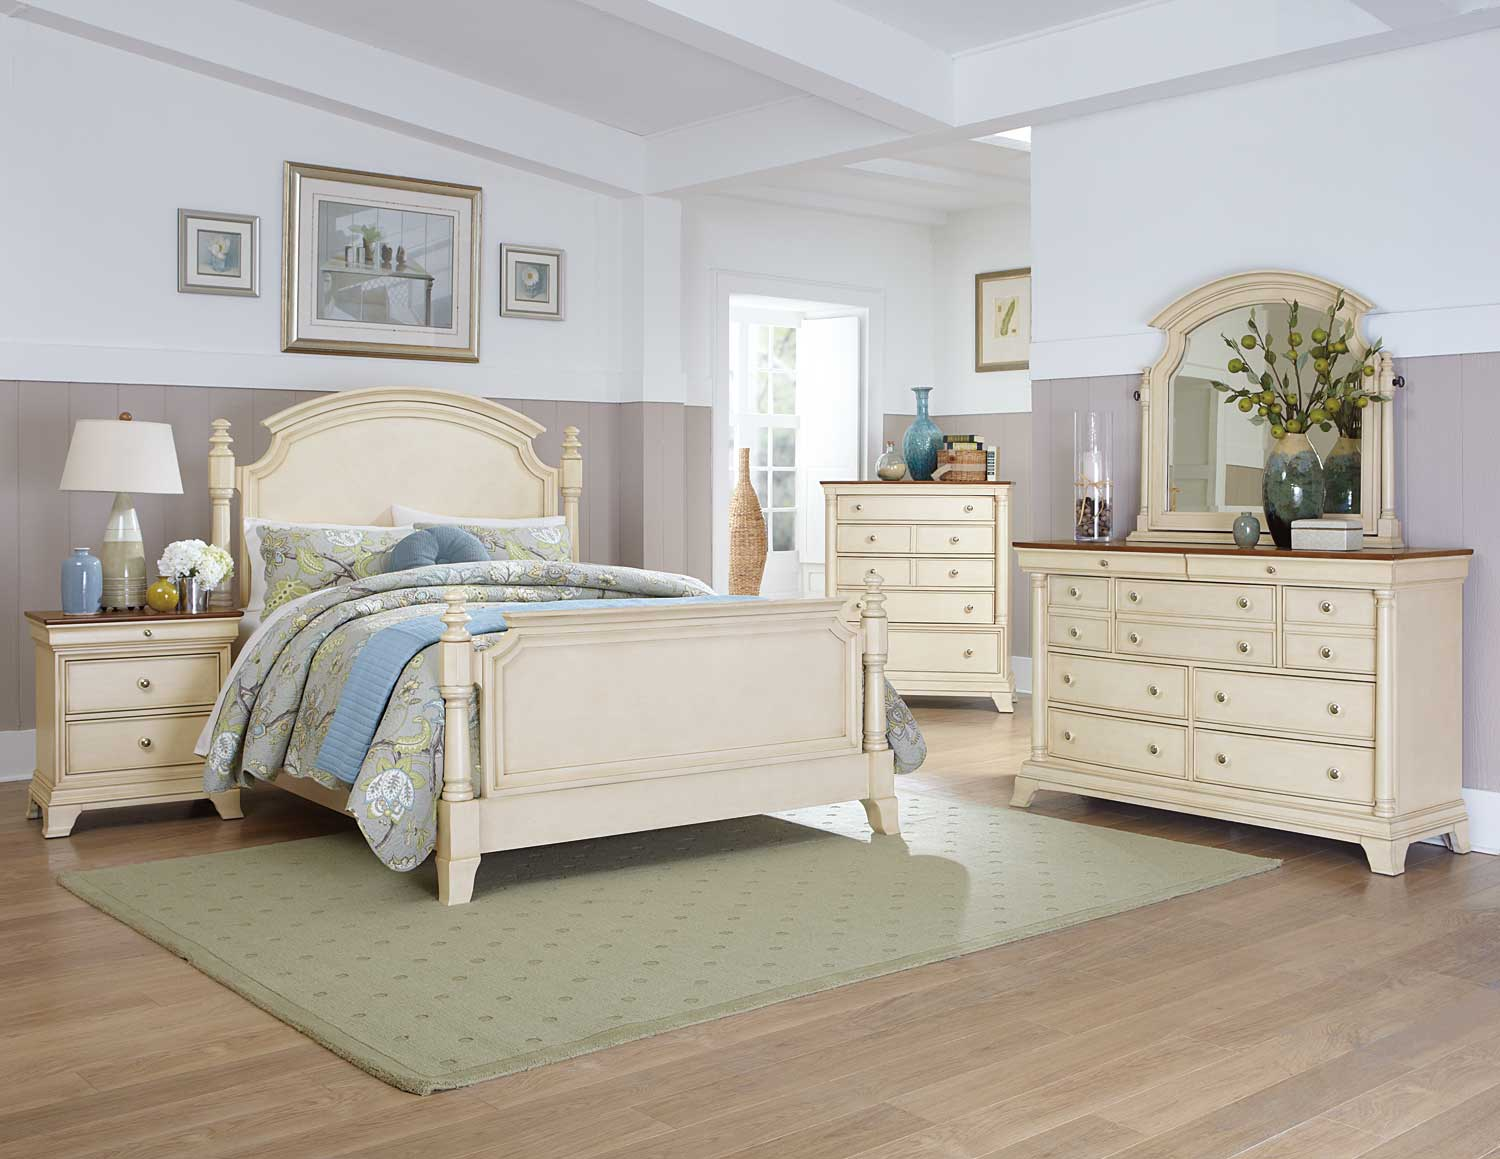 Homelegance inglewood ii bedroom set white b1402w bed for White bed set furniture